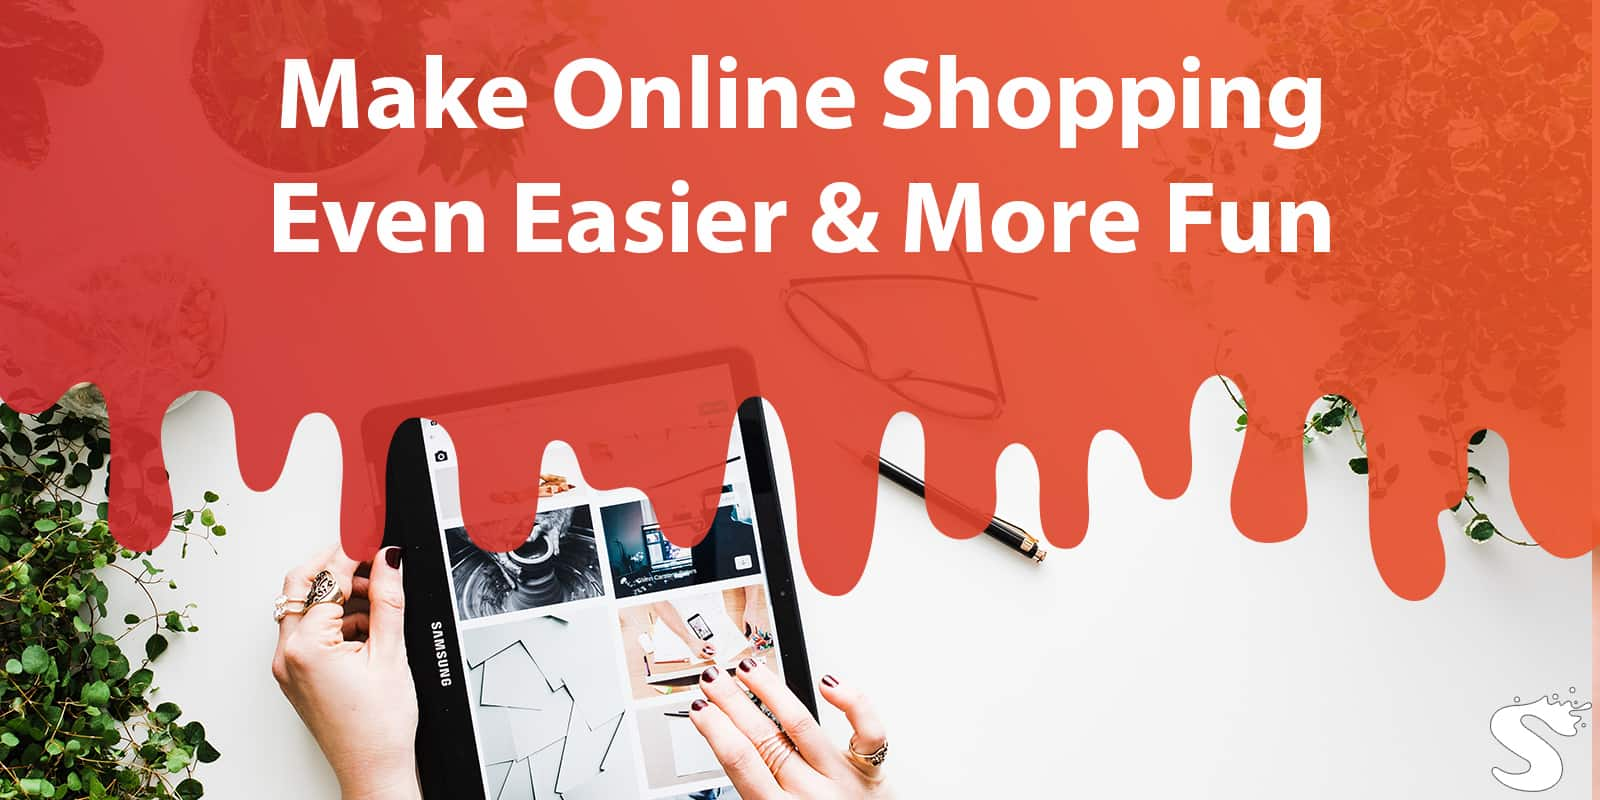 WooCommerce Quick View - Make Online Shopping Even Easier & More Fun